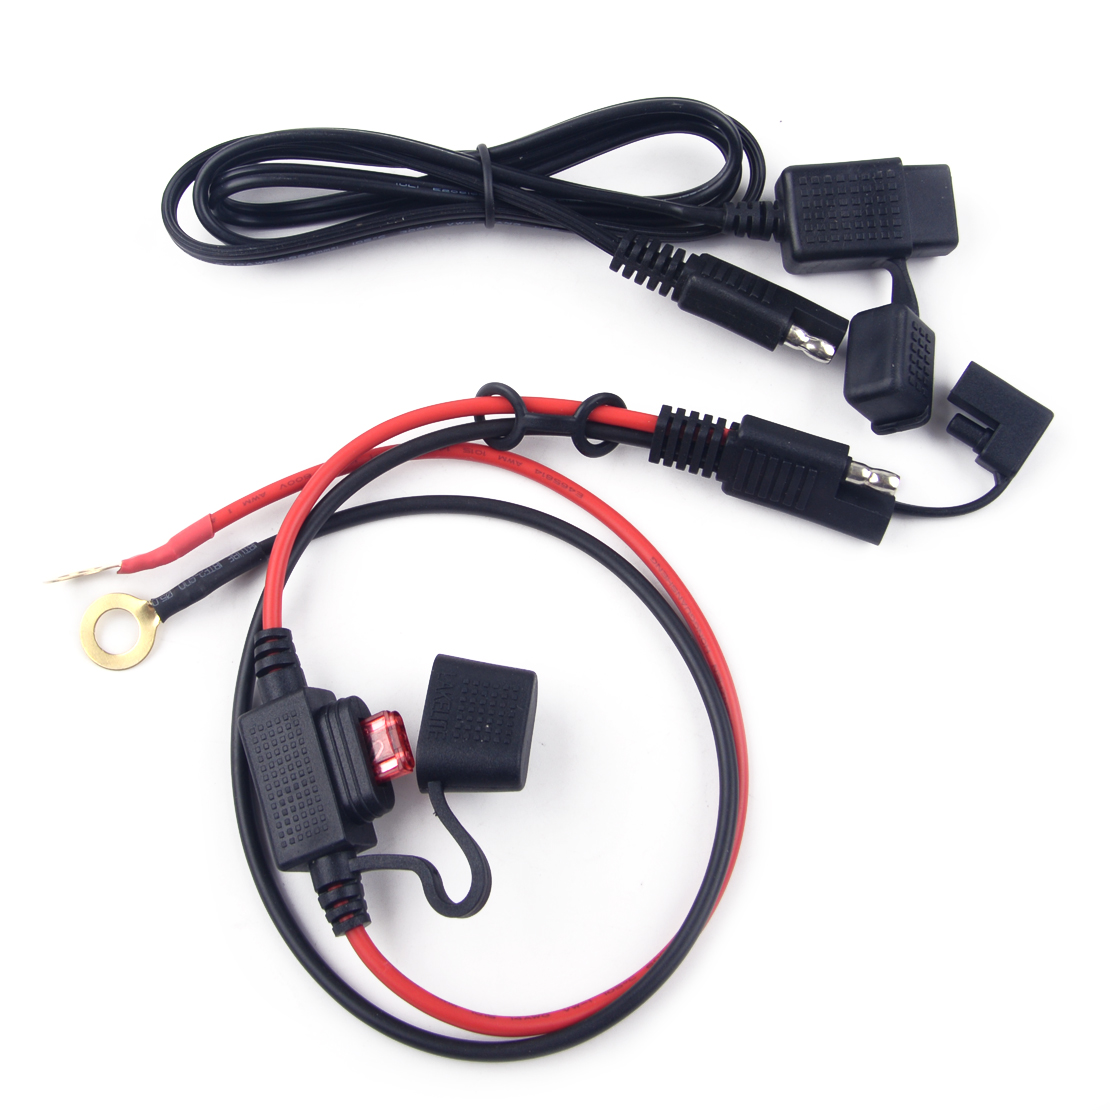 Citall Motorcycle Waterproof Sae To Usb Cable Adapter 10a Battery Wiring Charging Wire Inline Fuse Kit Spt1 18awg In Cables Adapters Sockets From Automobiles